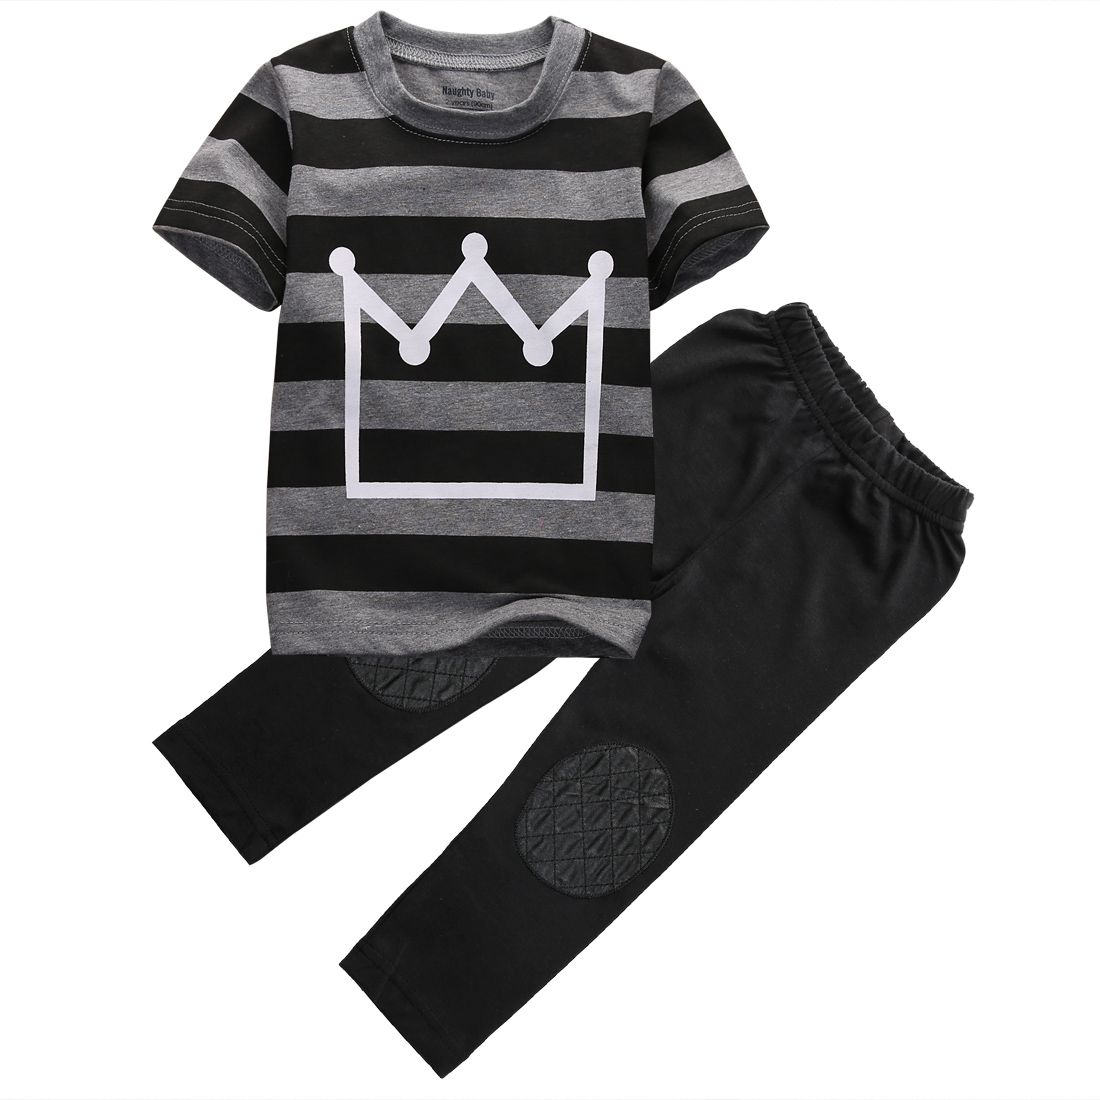 2PCS Toddler Kids Baby Boy Boys Outfits Sets T-Shirt Tops Pants Clothes Set